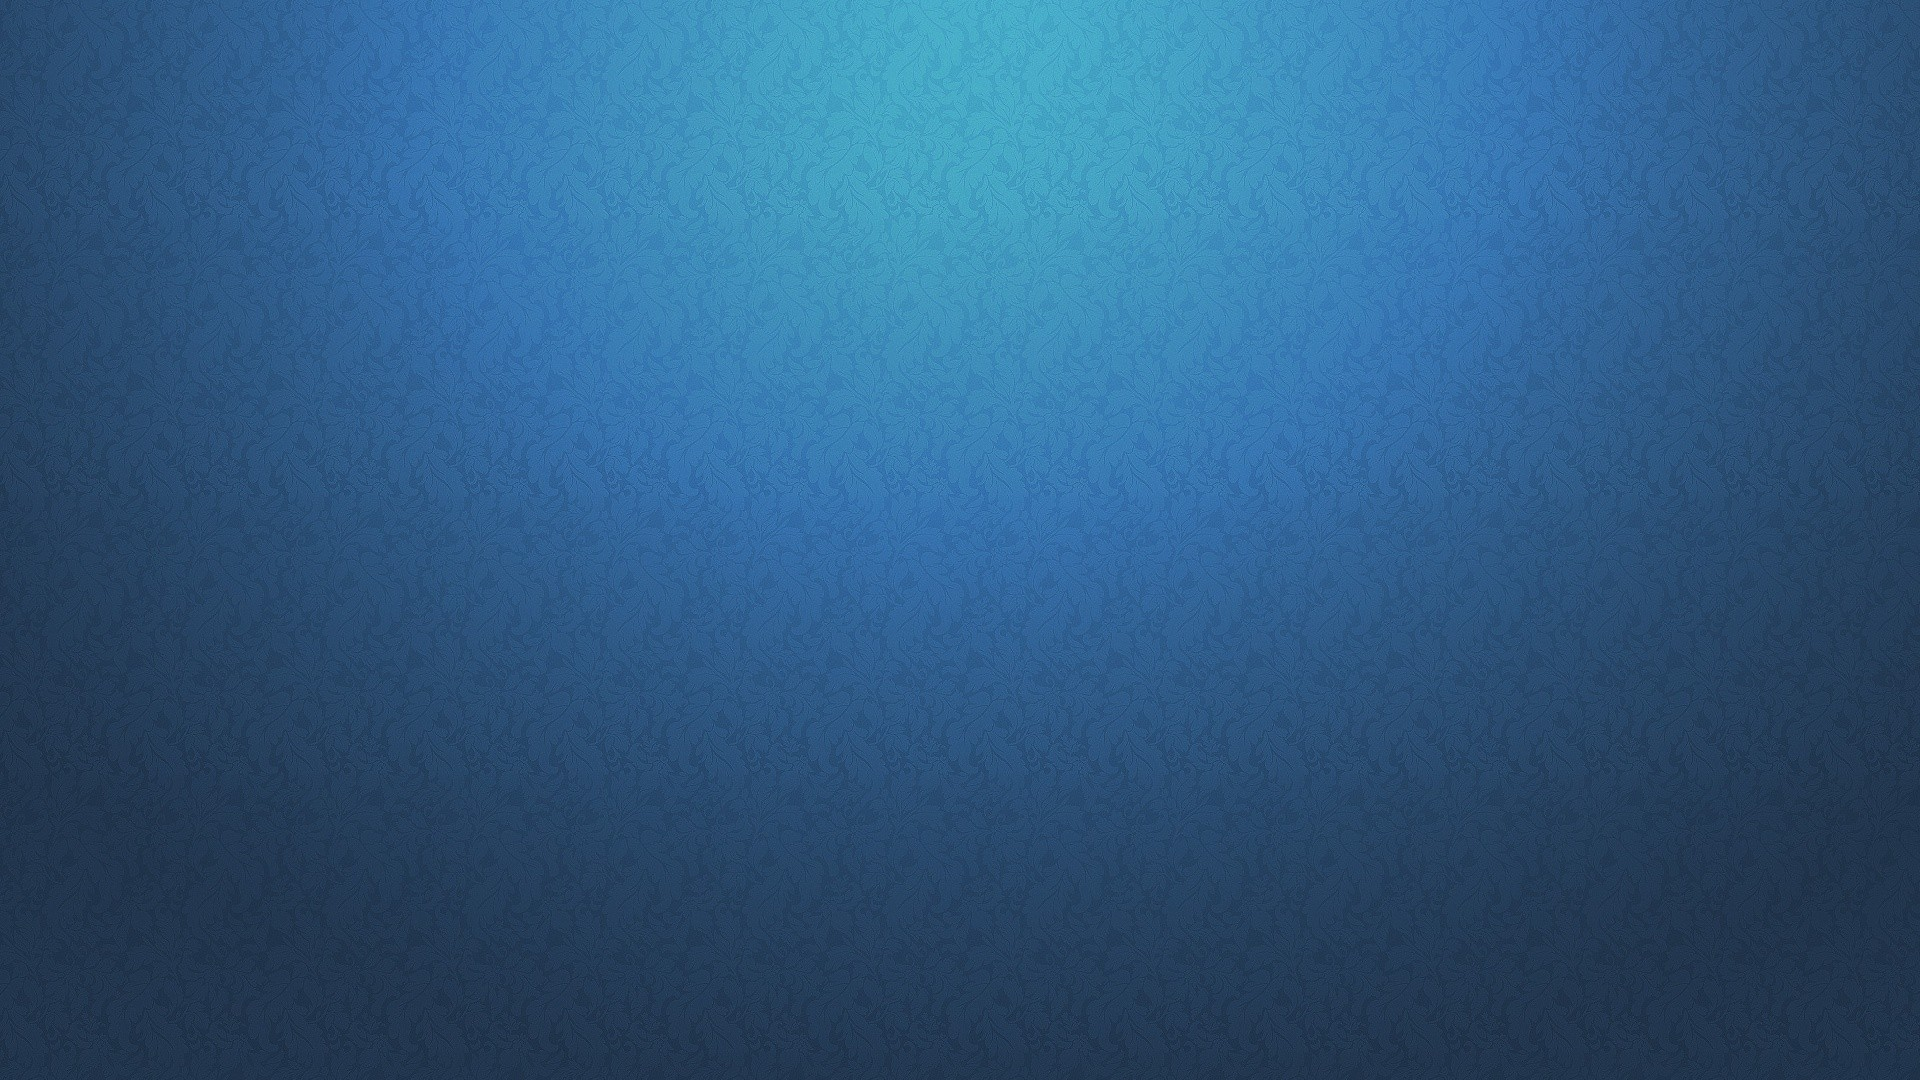 Subtle Blue Pattern. How to set wallpaper on your desktop? Click  the download link from above and set the wallpaper on the desktop from your  OS.